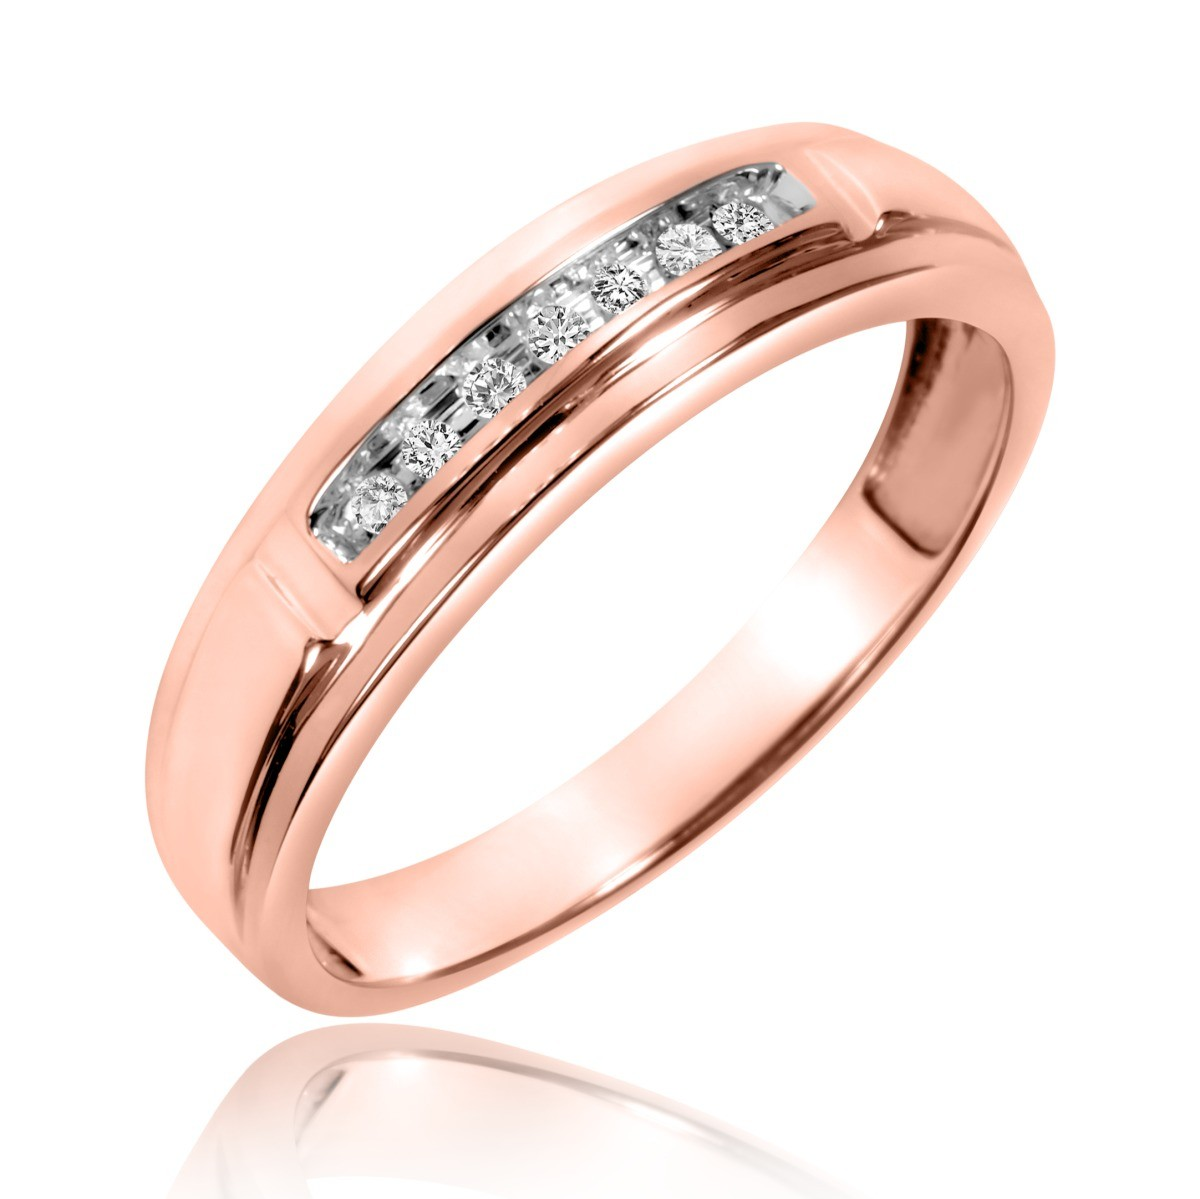 1/15 Carat T.W. Diamond Men's Wedding Band 10K Rose Gold